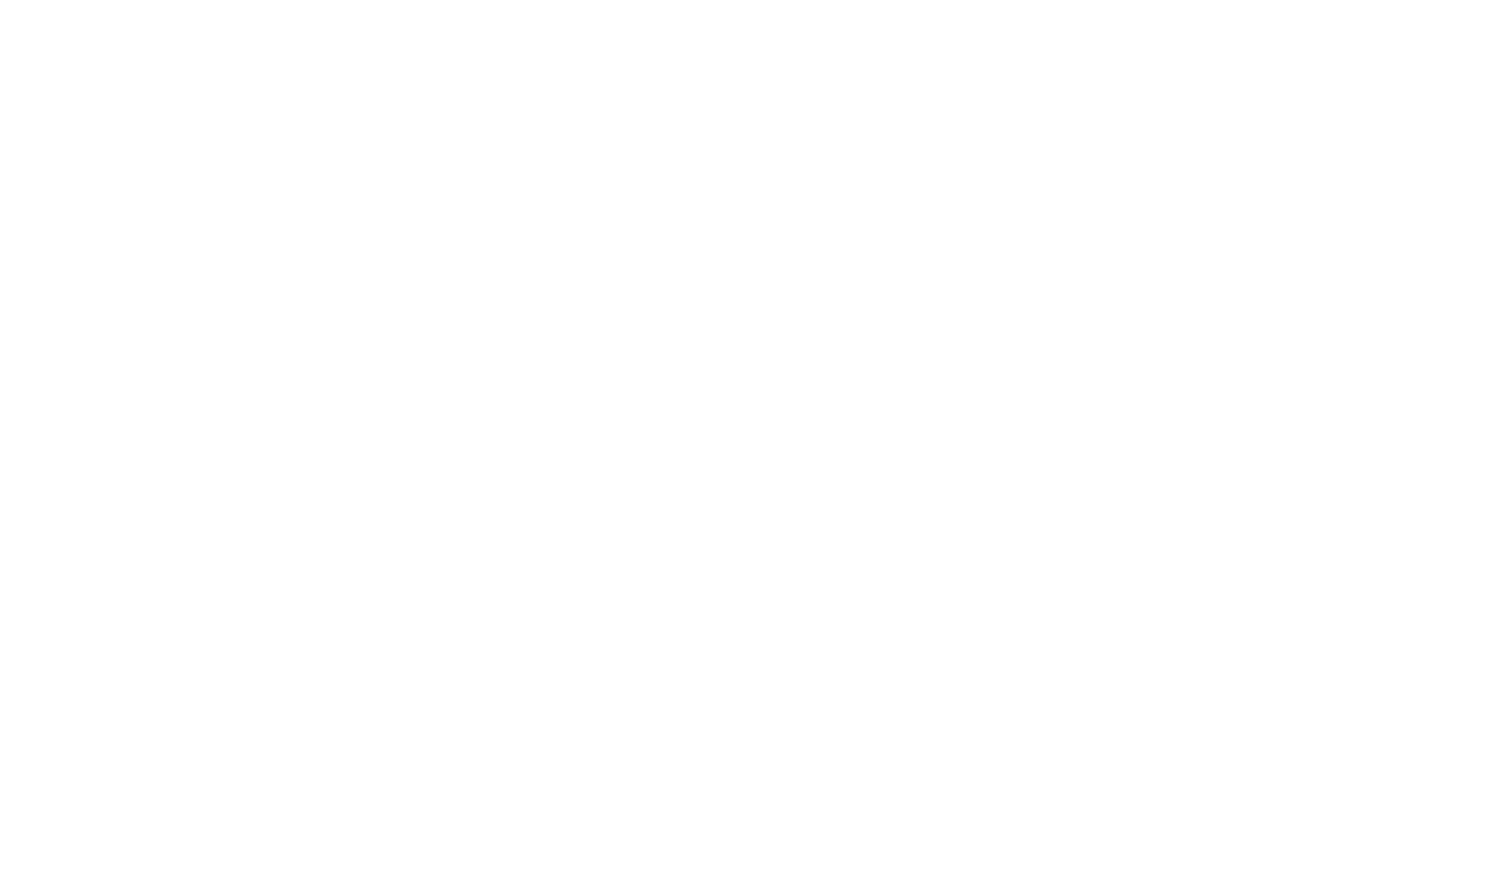 King & Co Furniture